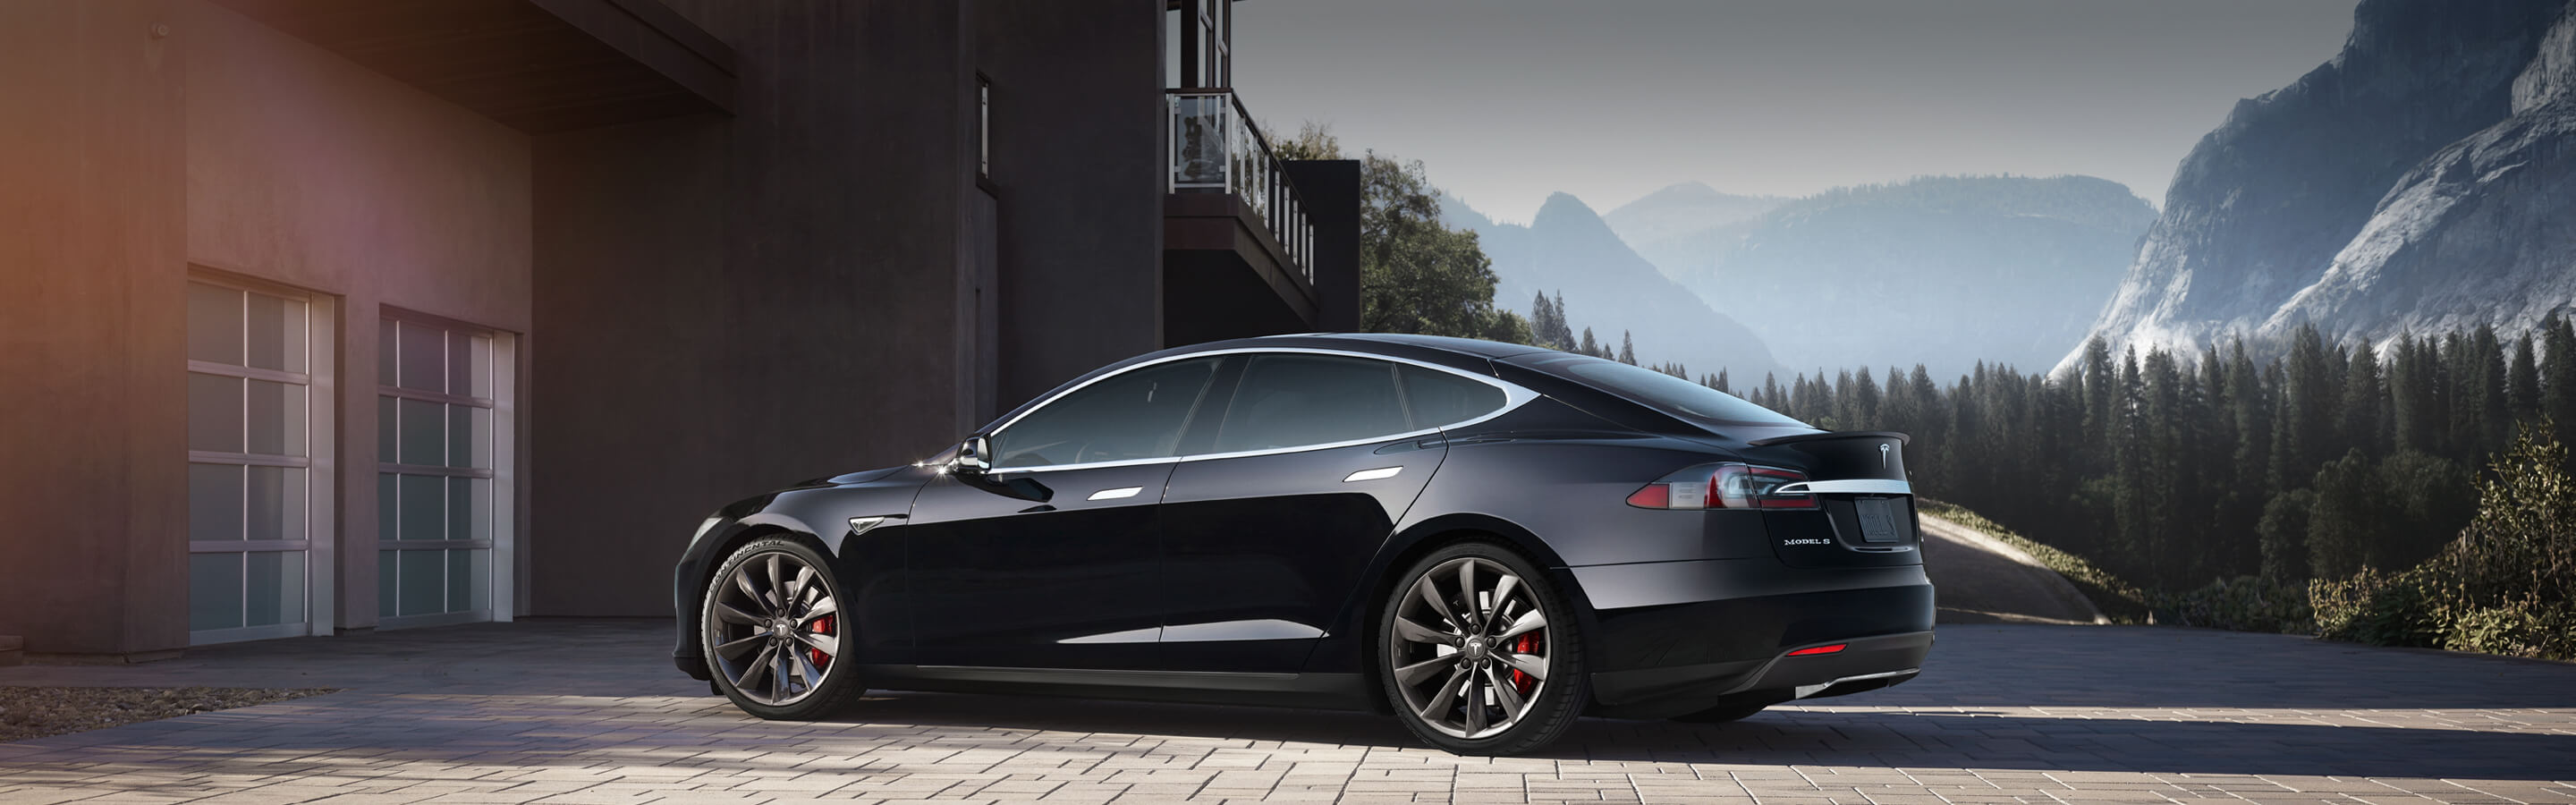 new inventory a tesla today